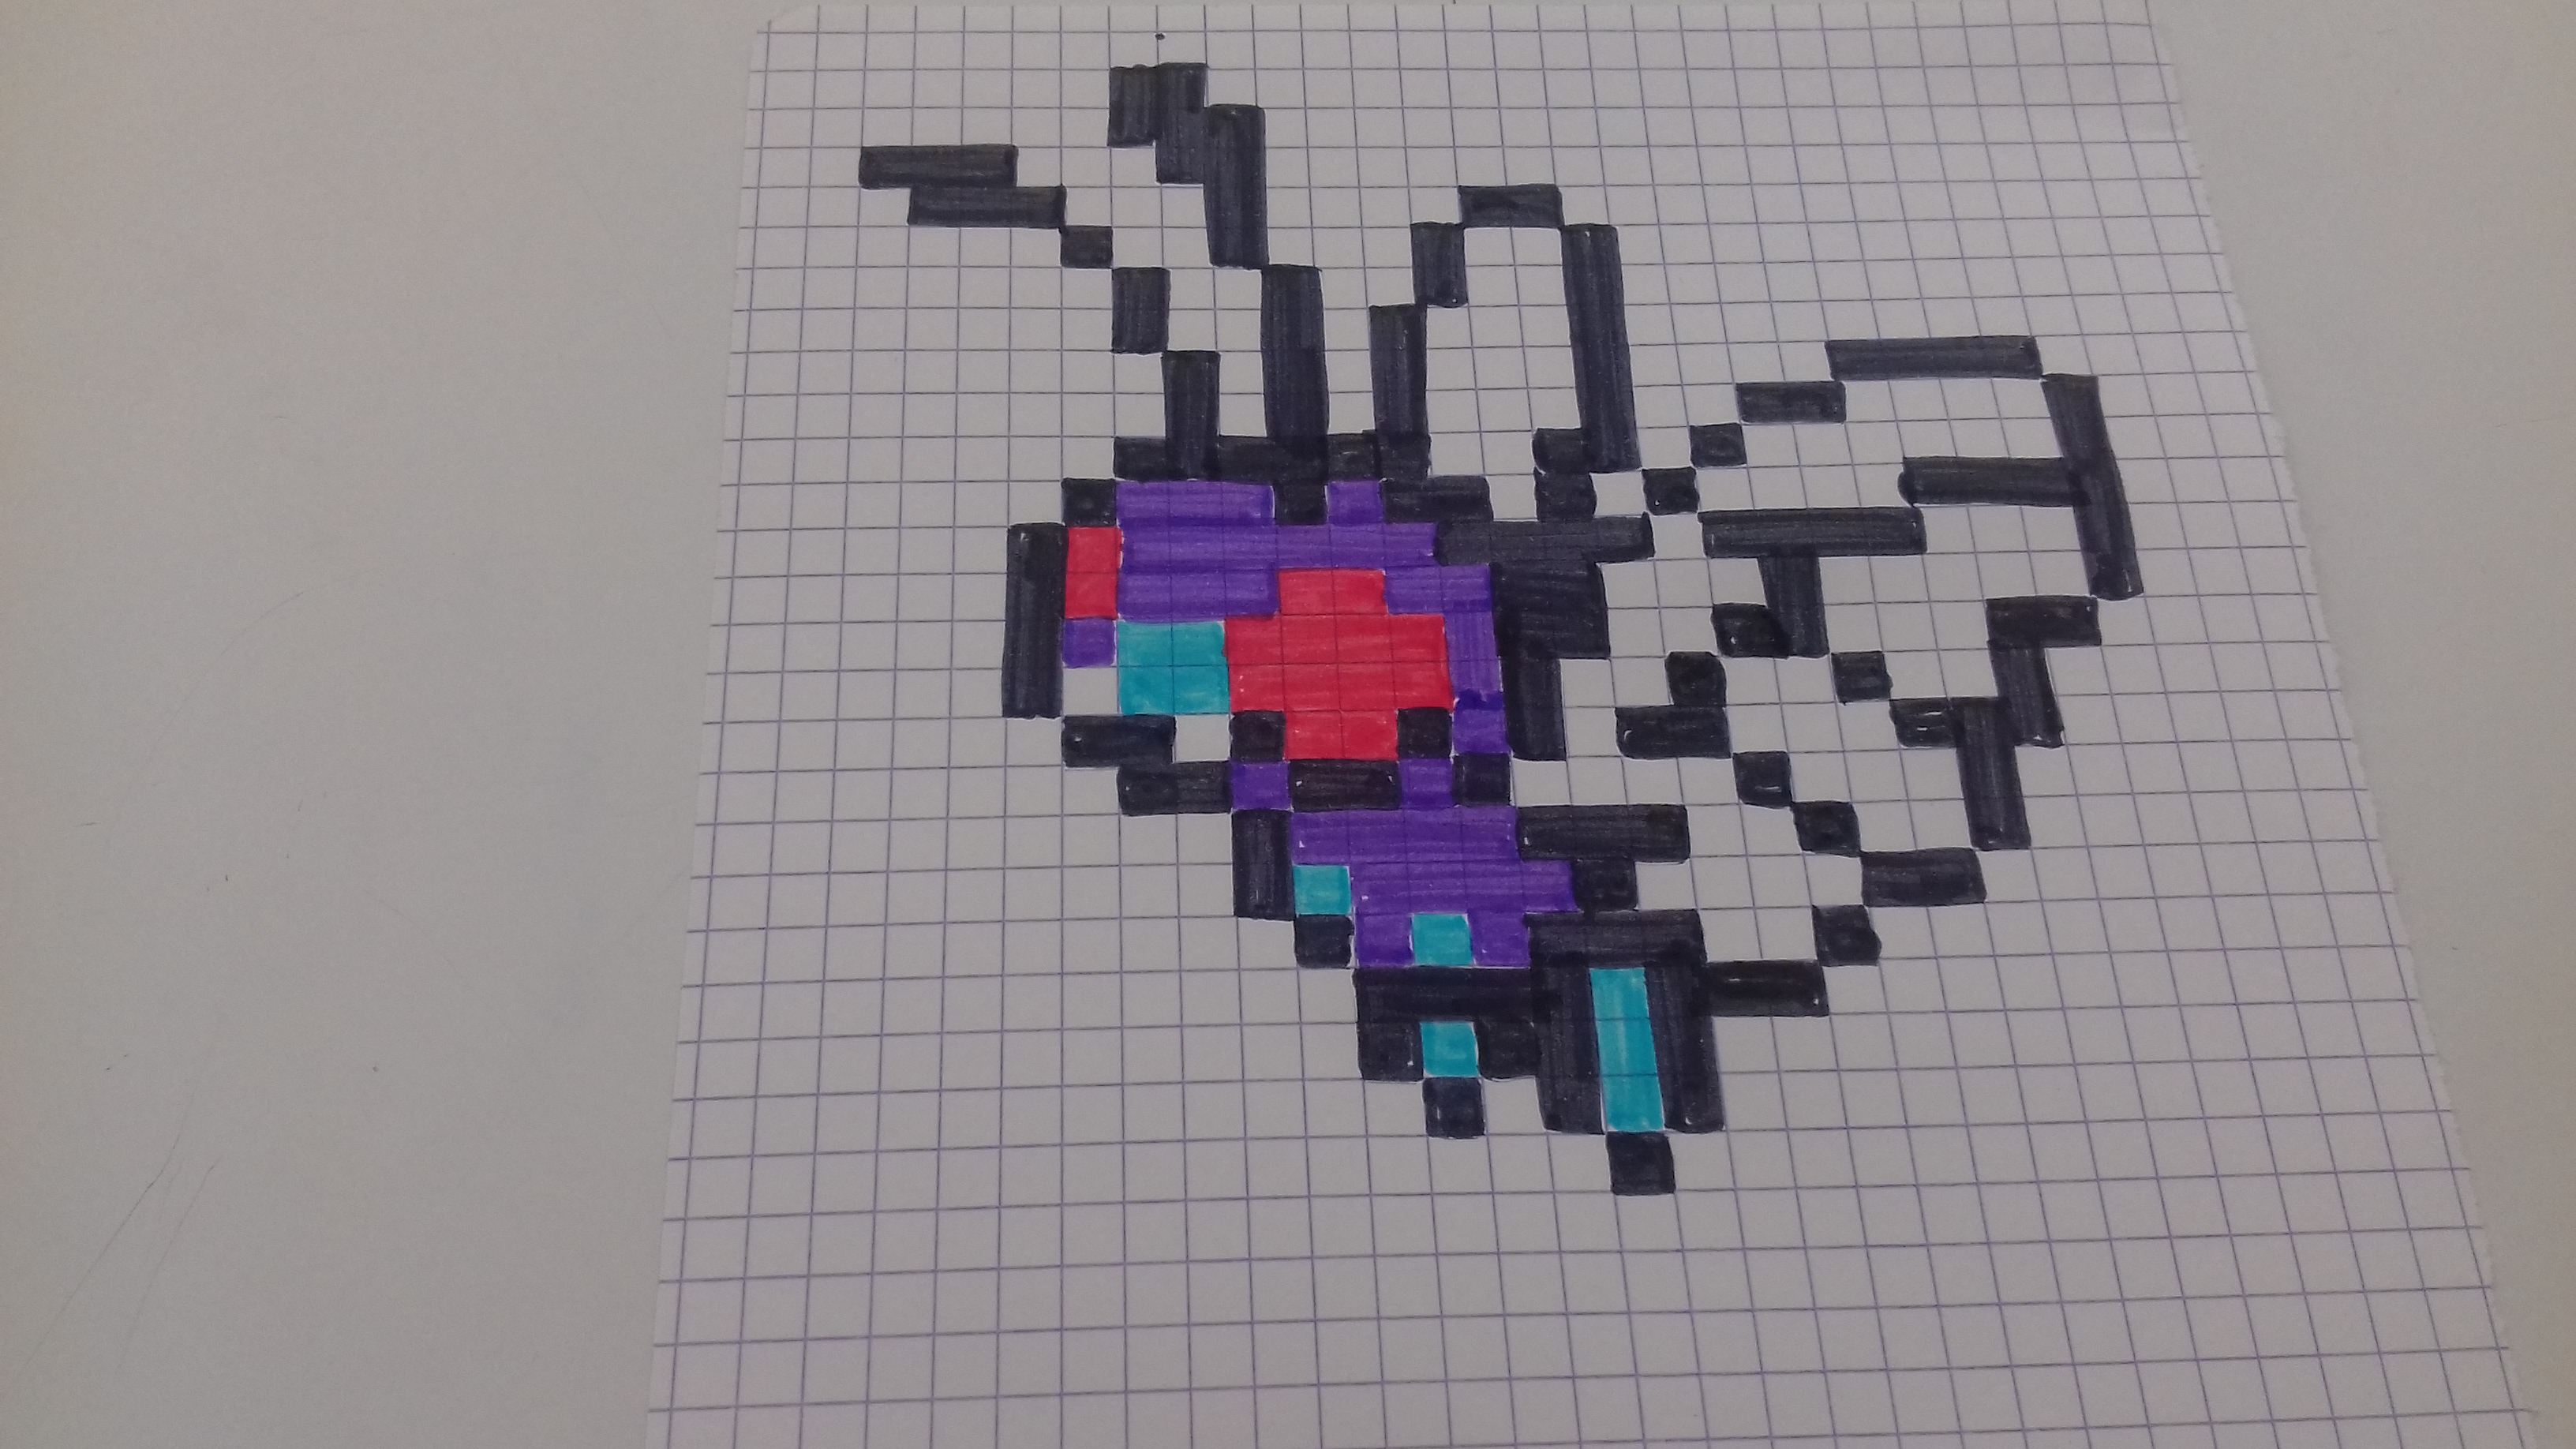 Pixel Art Pokemon Facile A Faire Tuto Poussifeu En Pixel